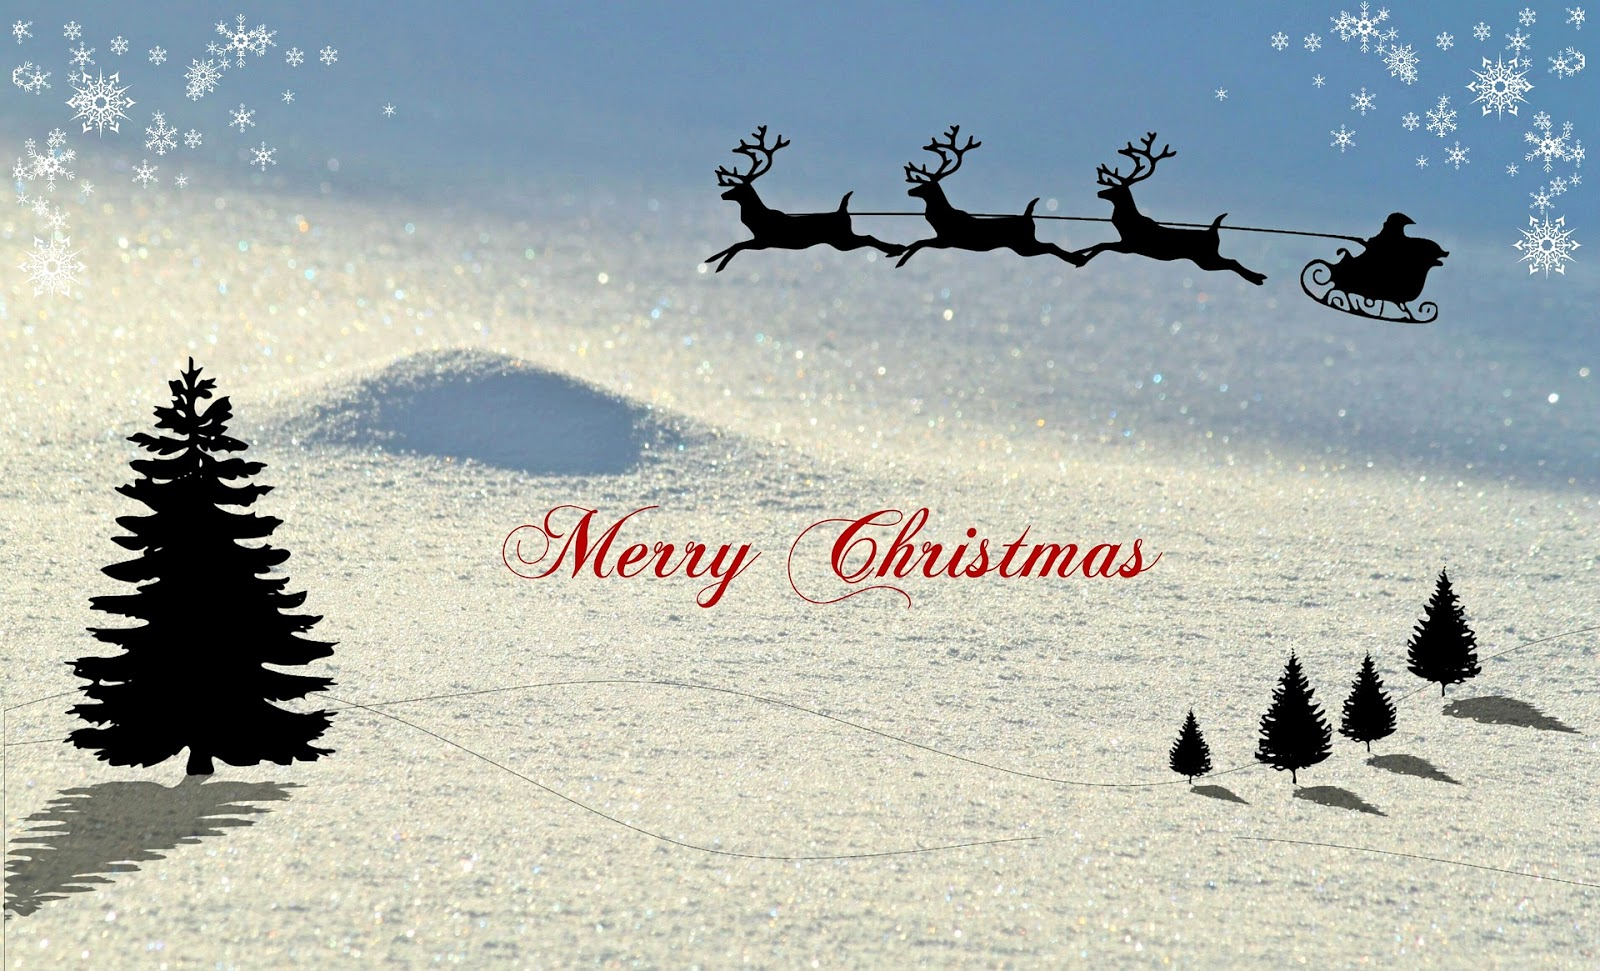 Merry Christmas 2016 Photos Free Download